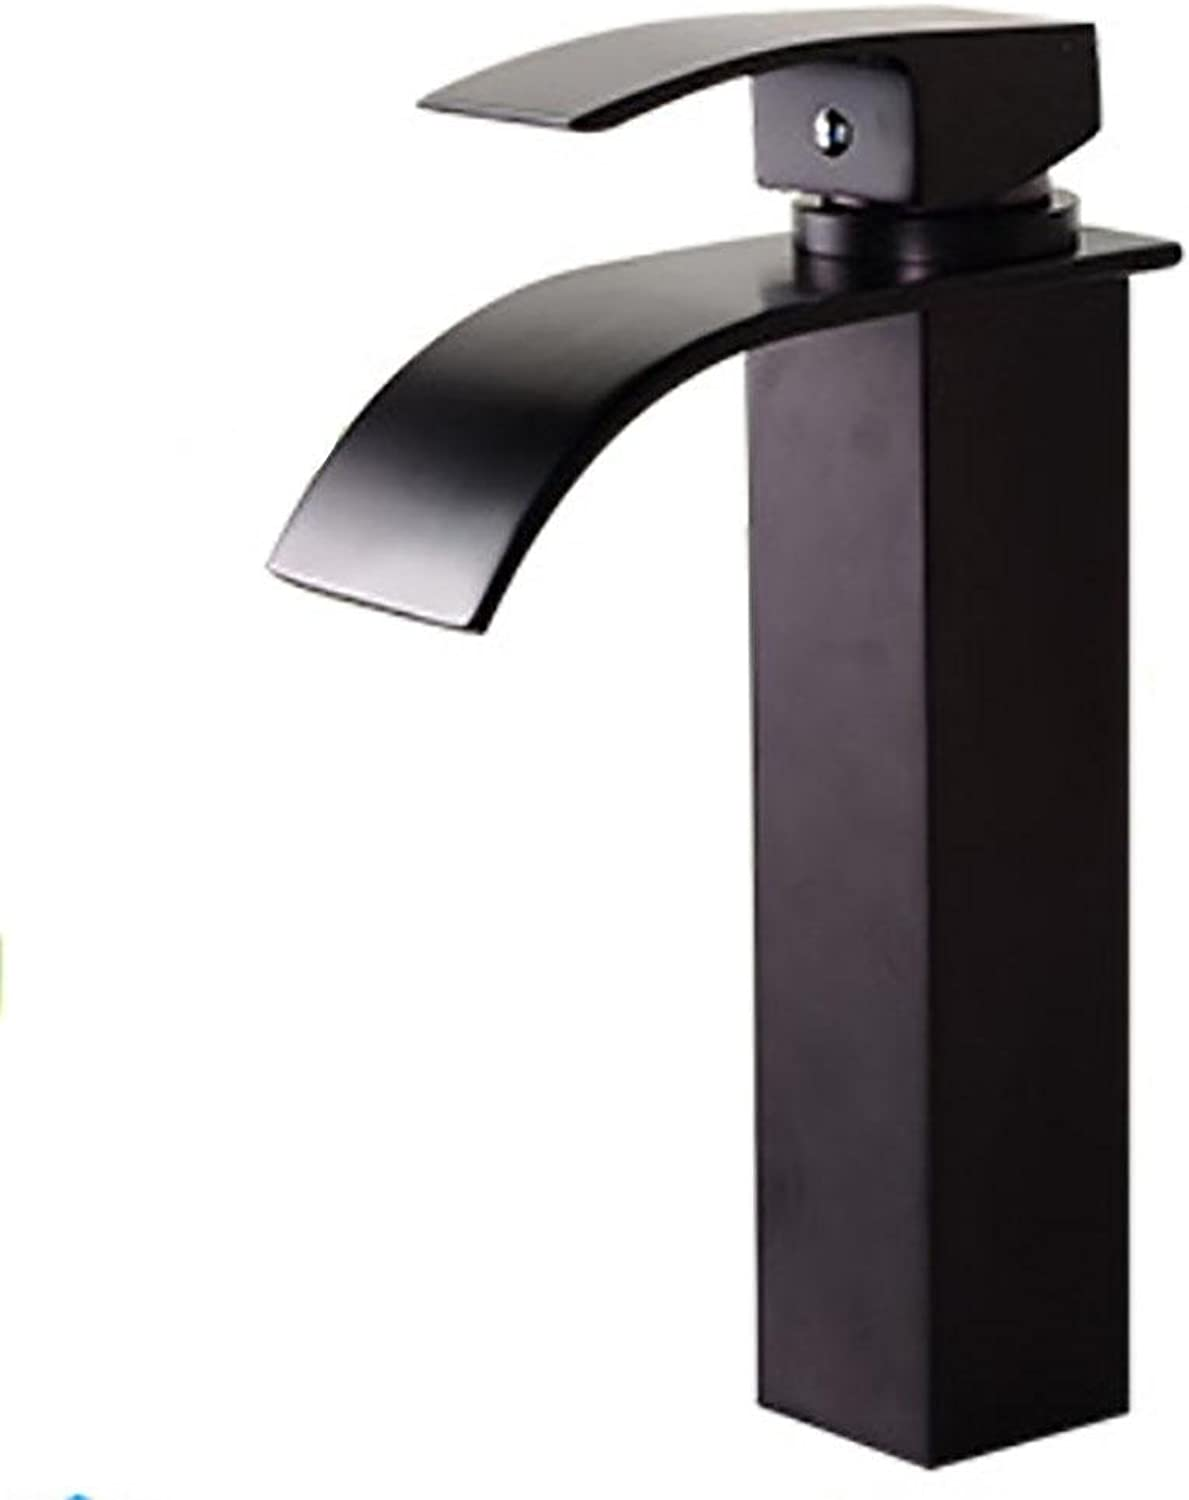 SLT Waterfall Bathroom Faucet Basin Mixer Tap with Hot and Cold Water Black